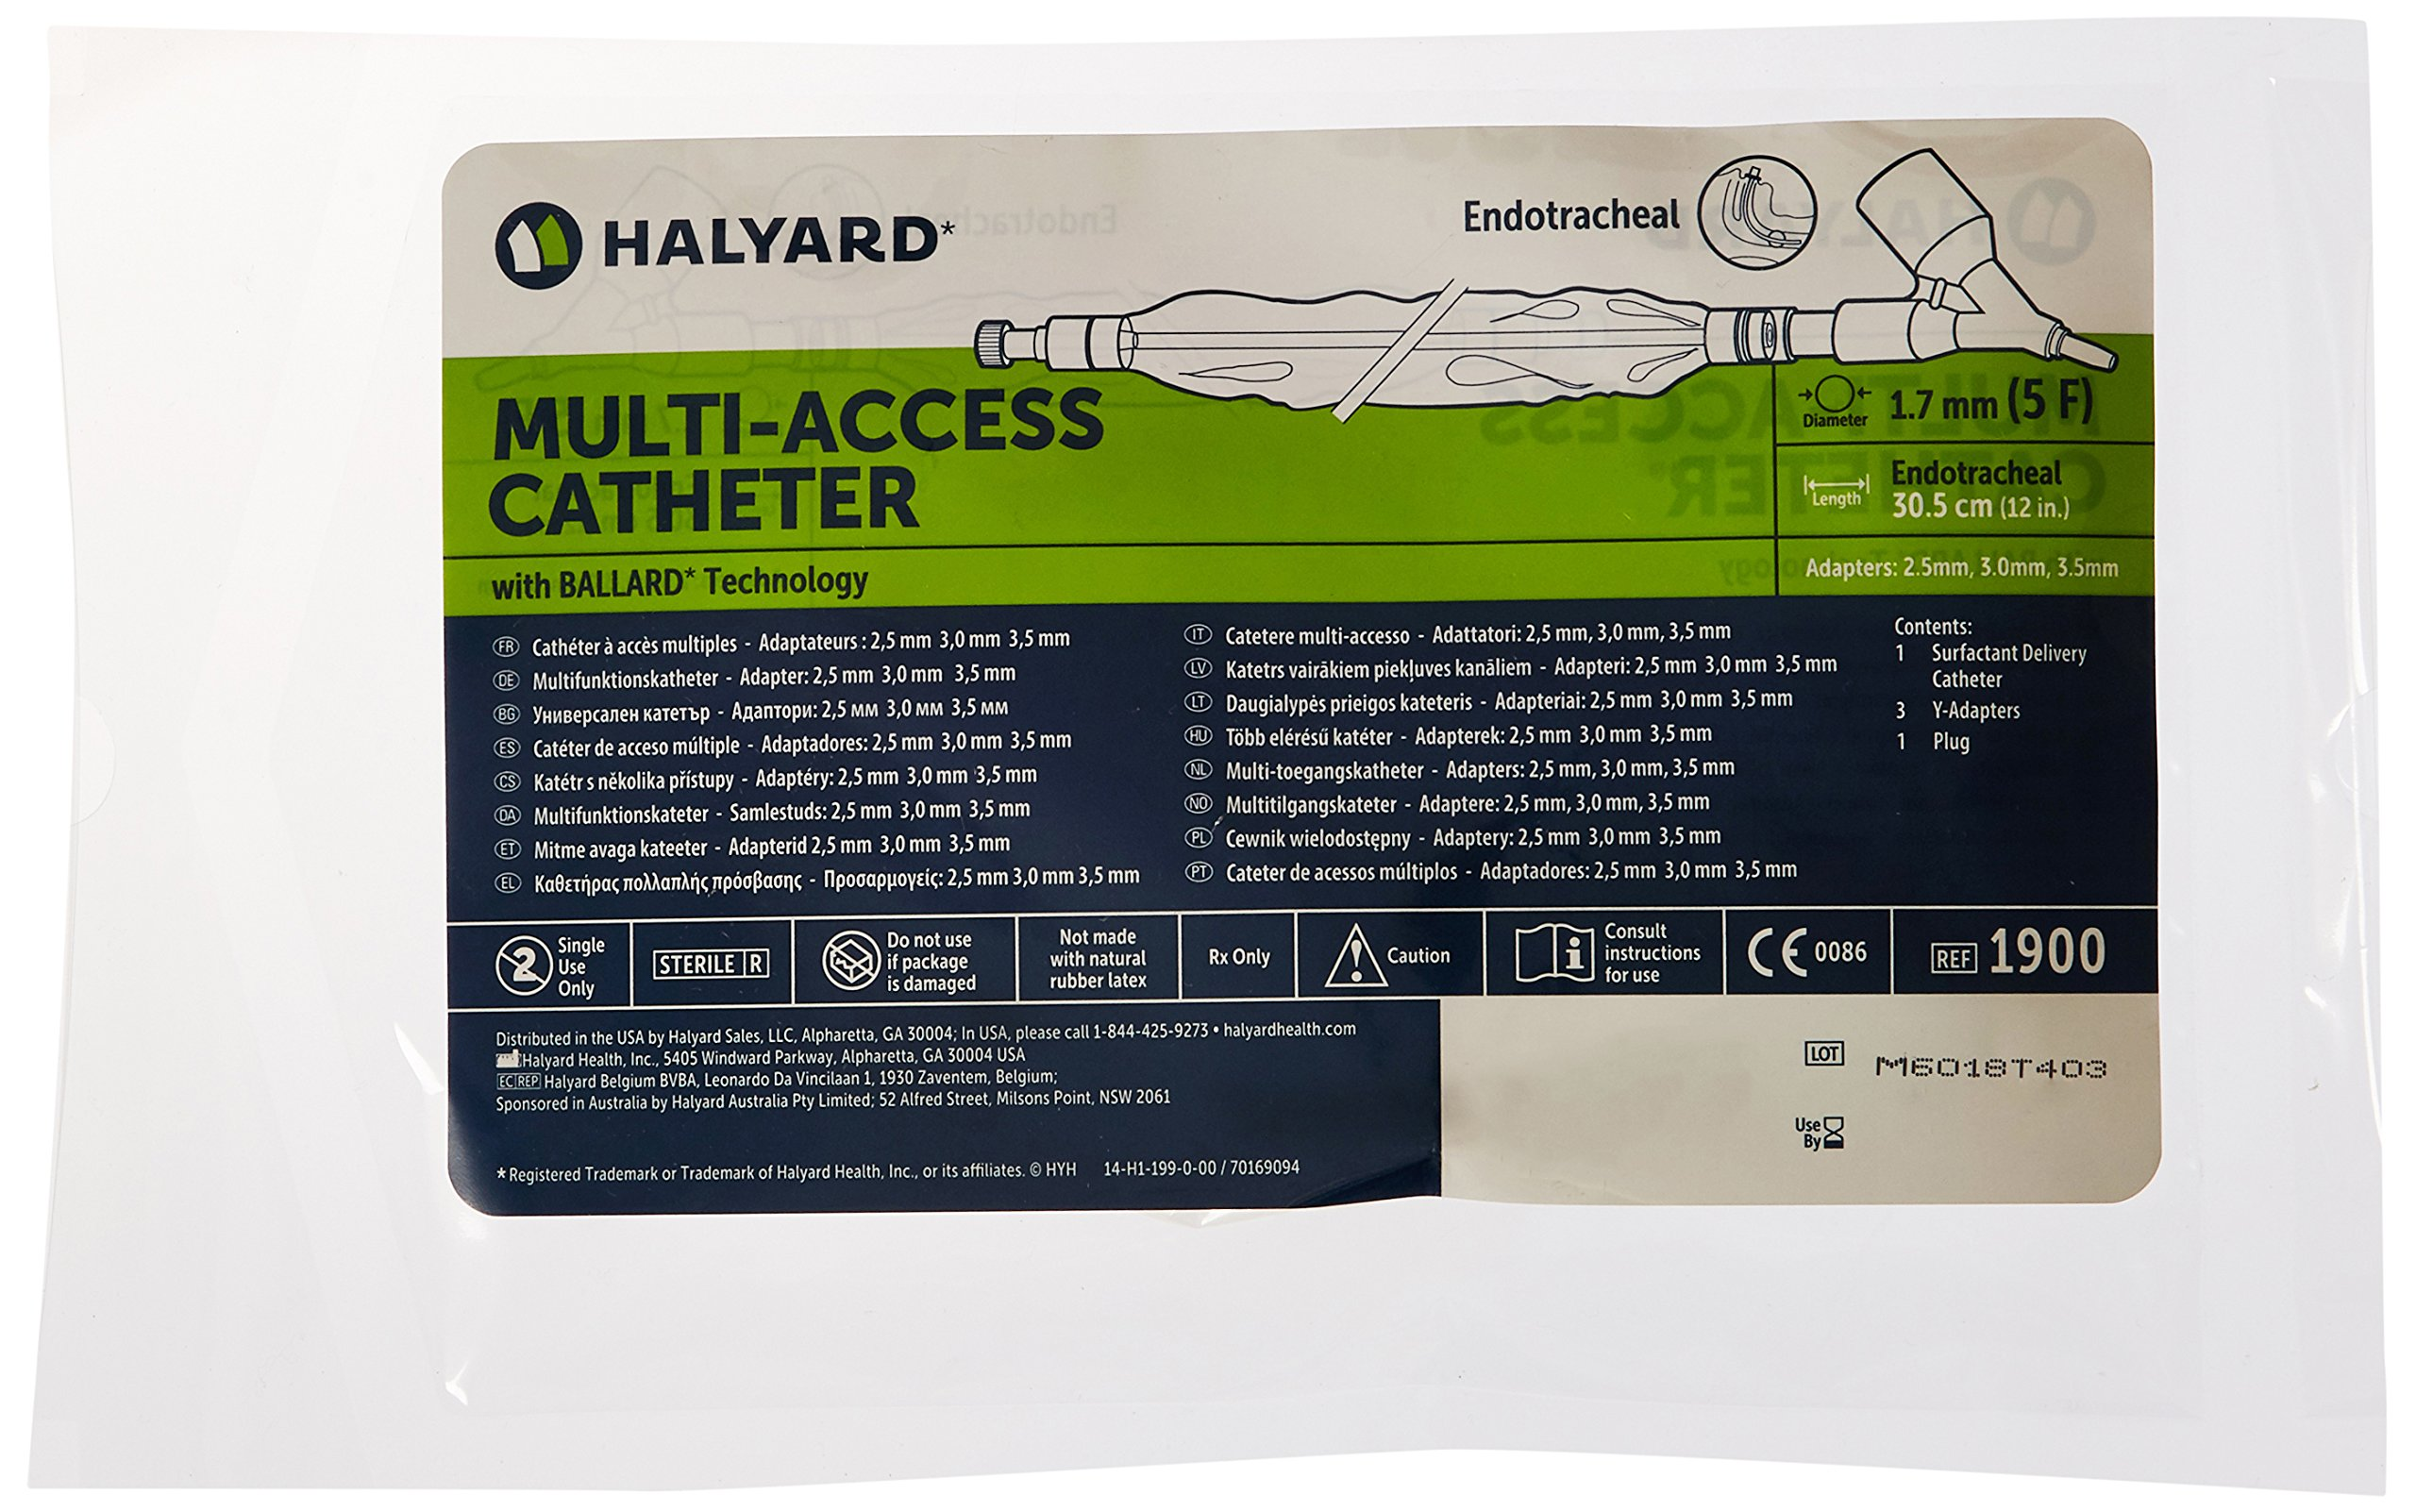 Halyard Health 1900 Closed Suction Systems for Neonatal/Pediatric, 5 Fr Multi-Access Catheter, 3.0 mm, 3.5 mm, 4.0 mm Adapters, Grey (Pack of 5)